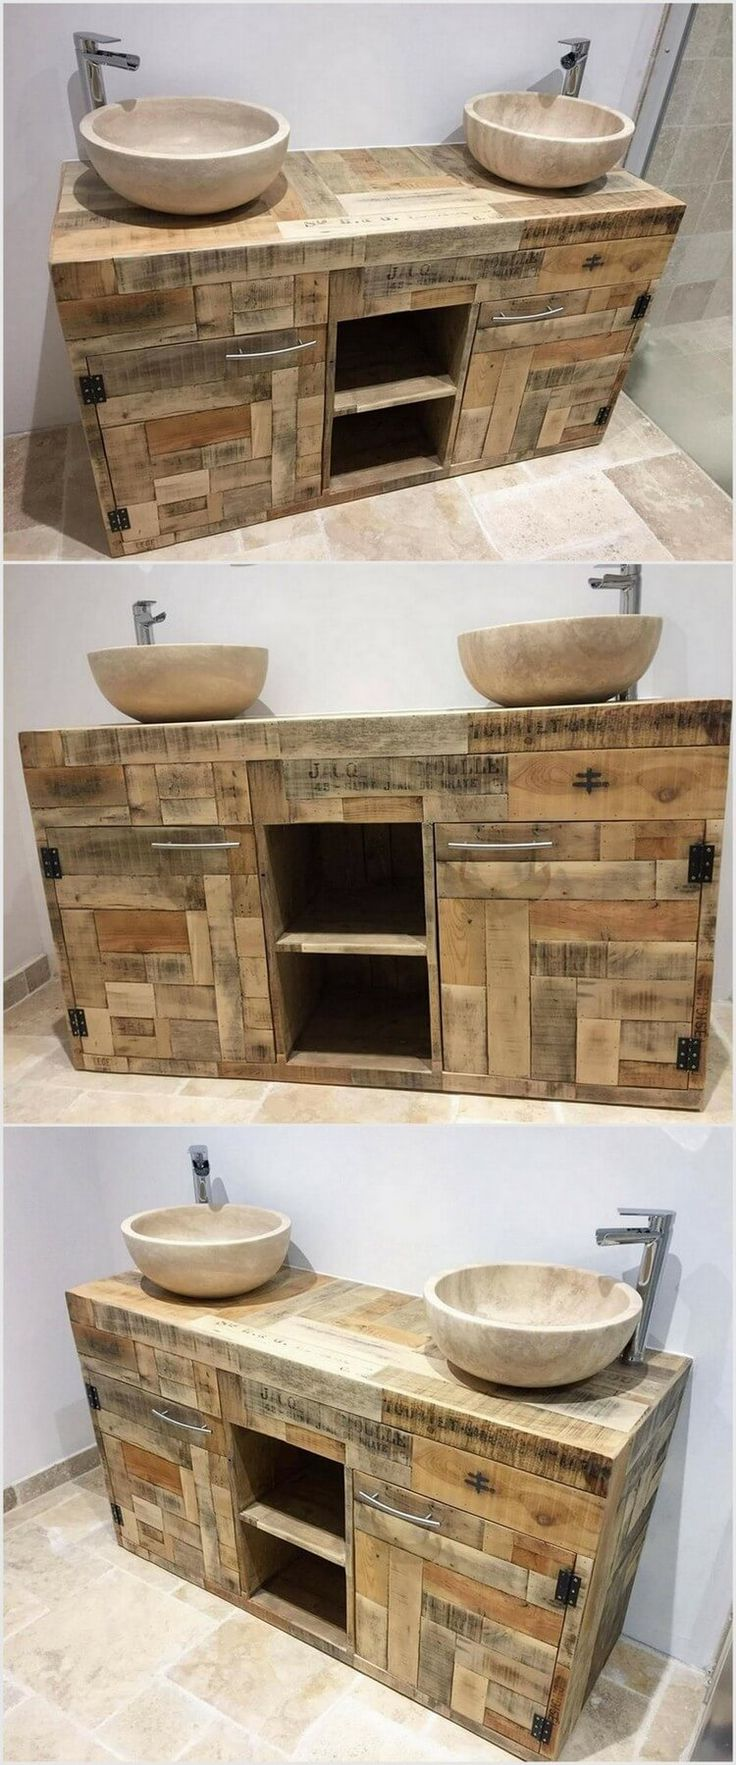 Best 25 pallet bathroom ideas on pinterest rustic for Pallet bathroom ideas